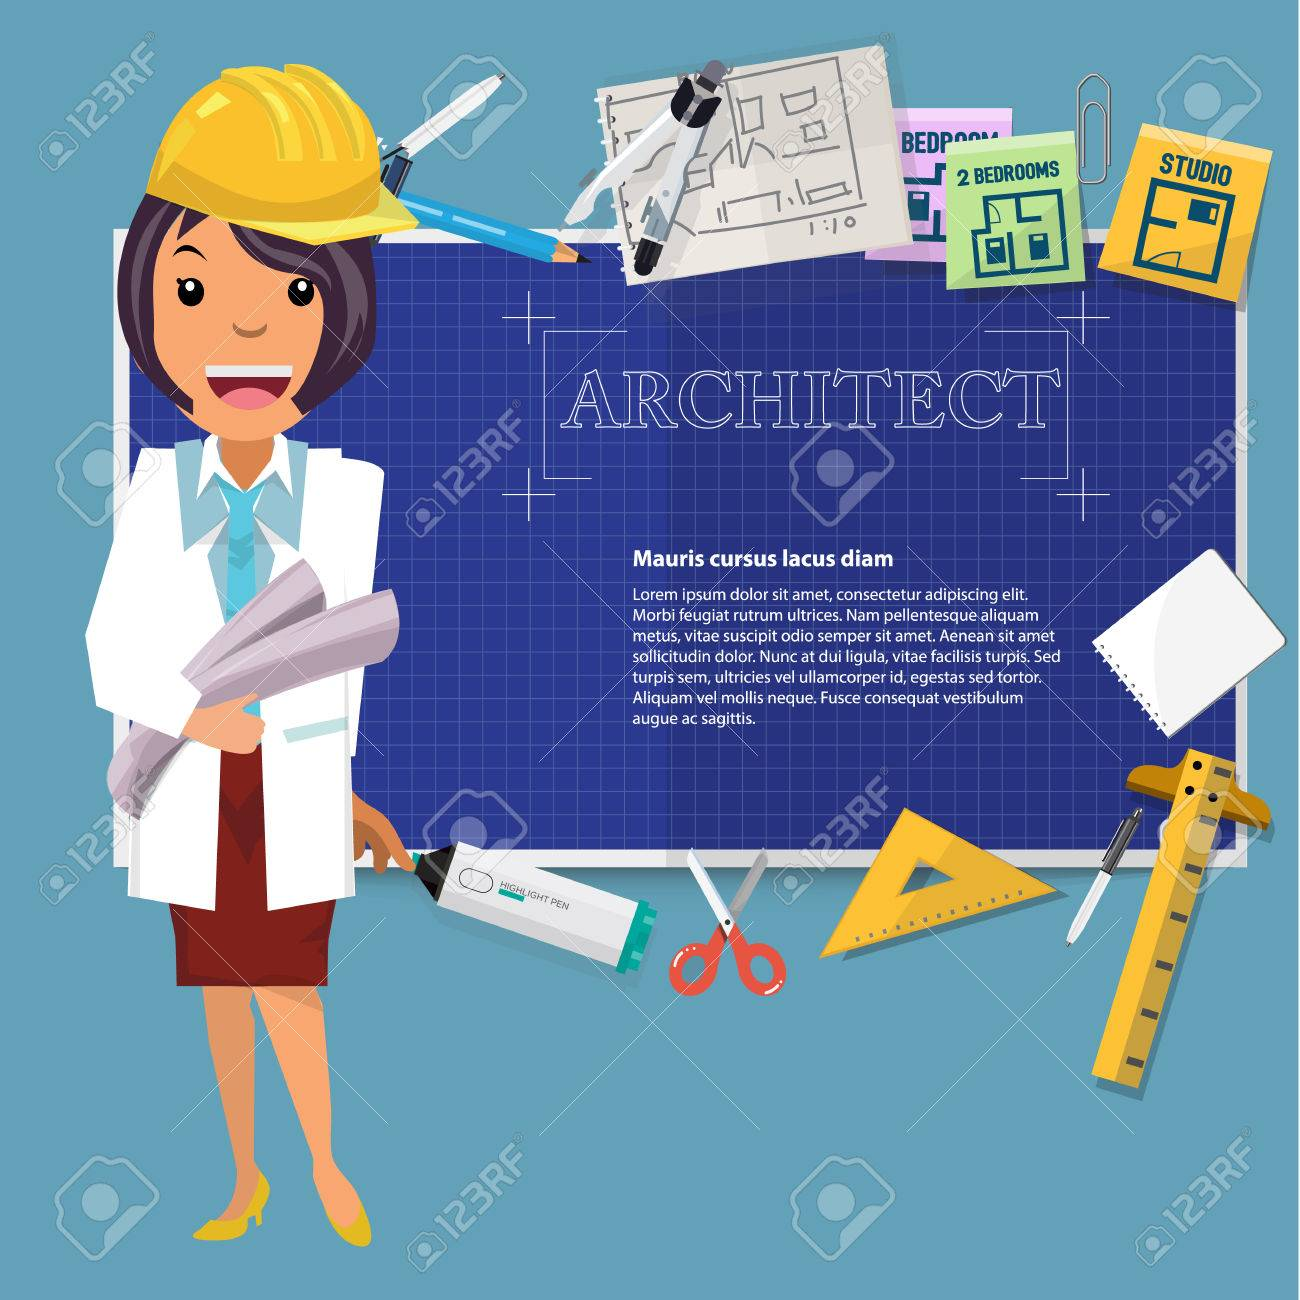 Architect girl with blueprint paper and icon to presentation architect girl with blueprint paper and icon to presentation vector illustration stock vector 67484579 malvernweather Image collections